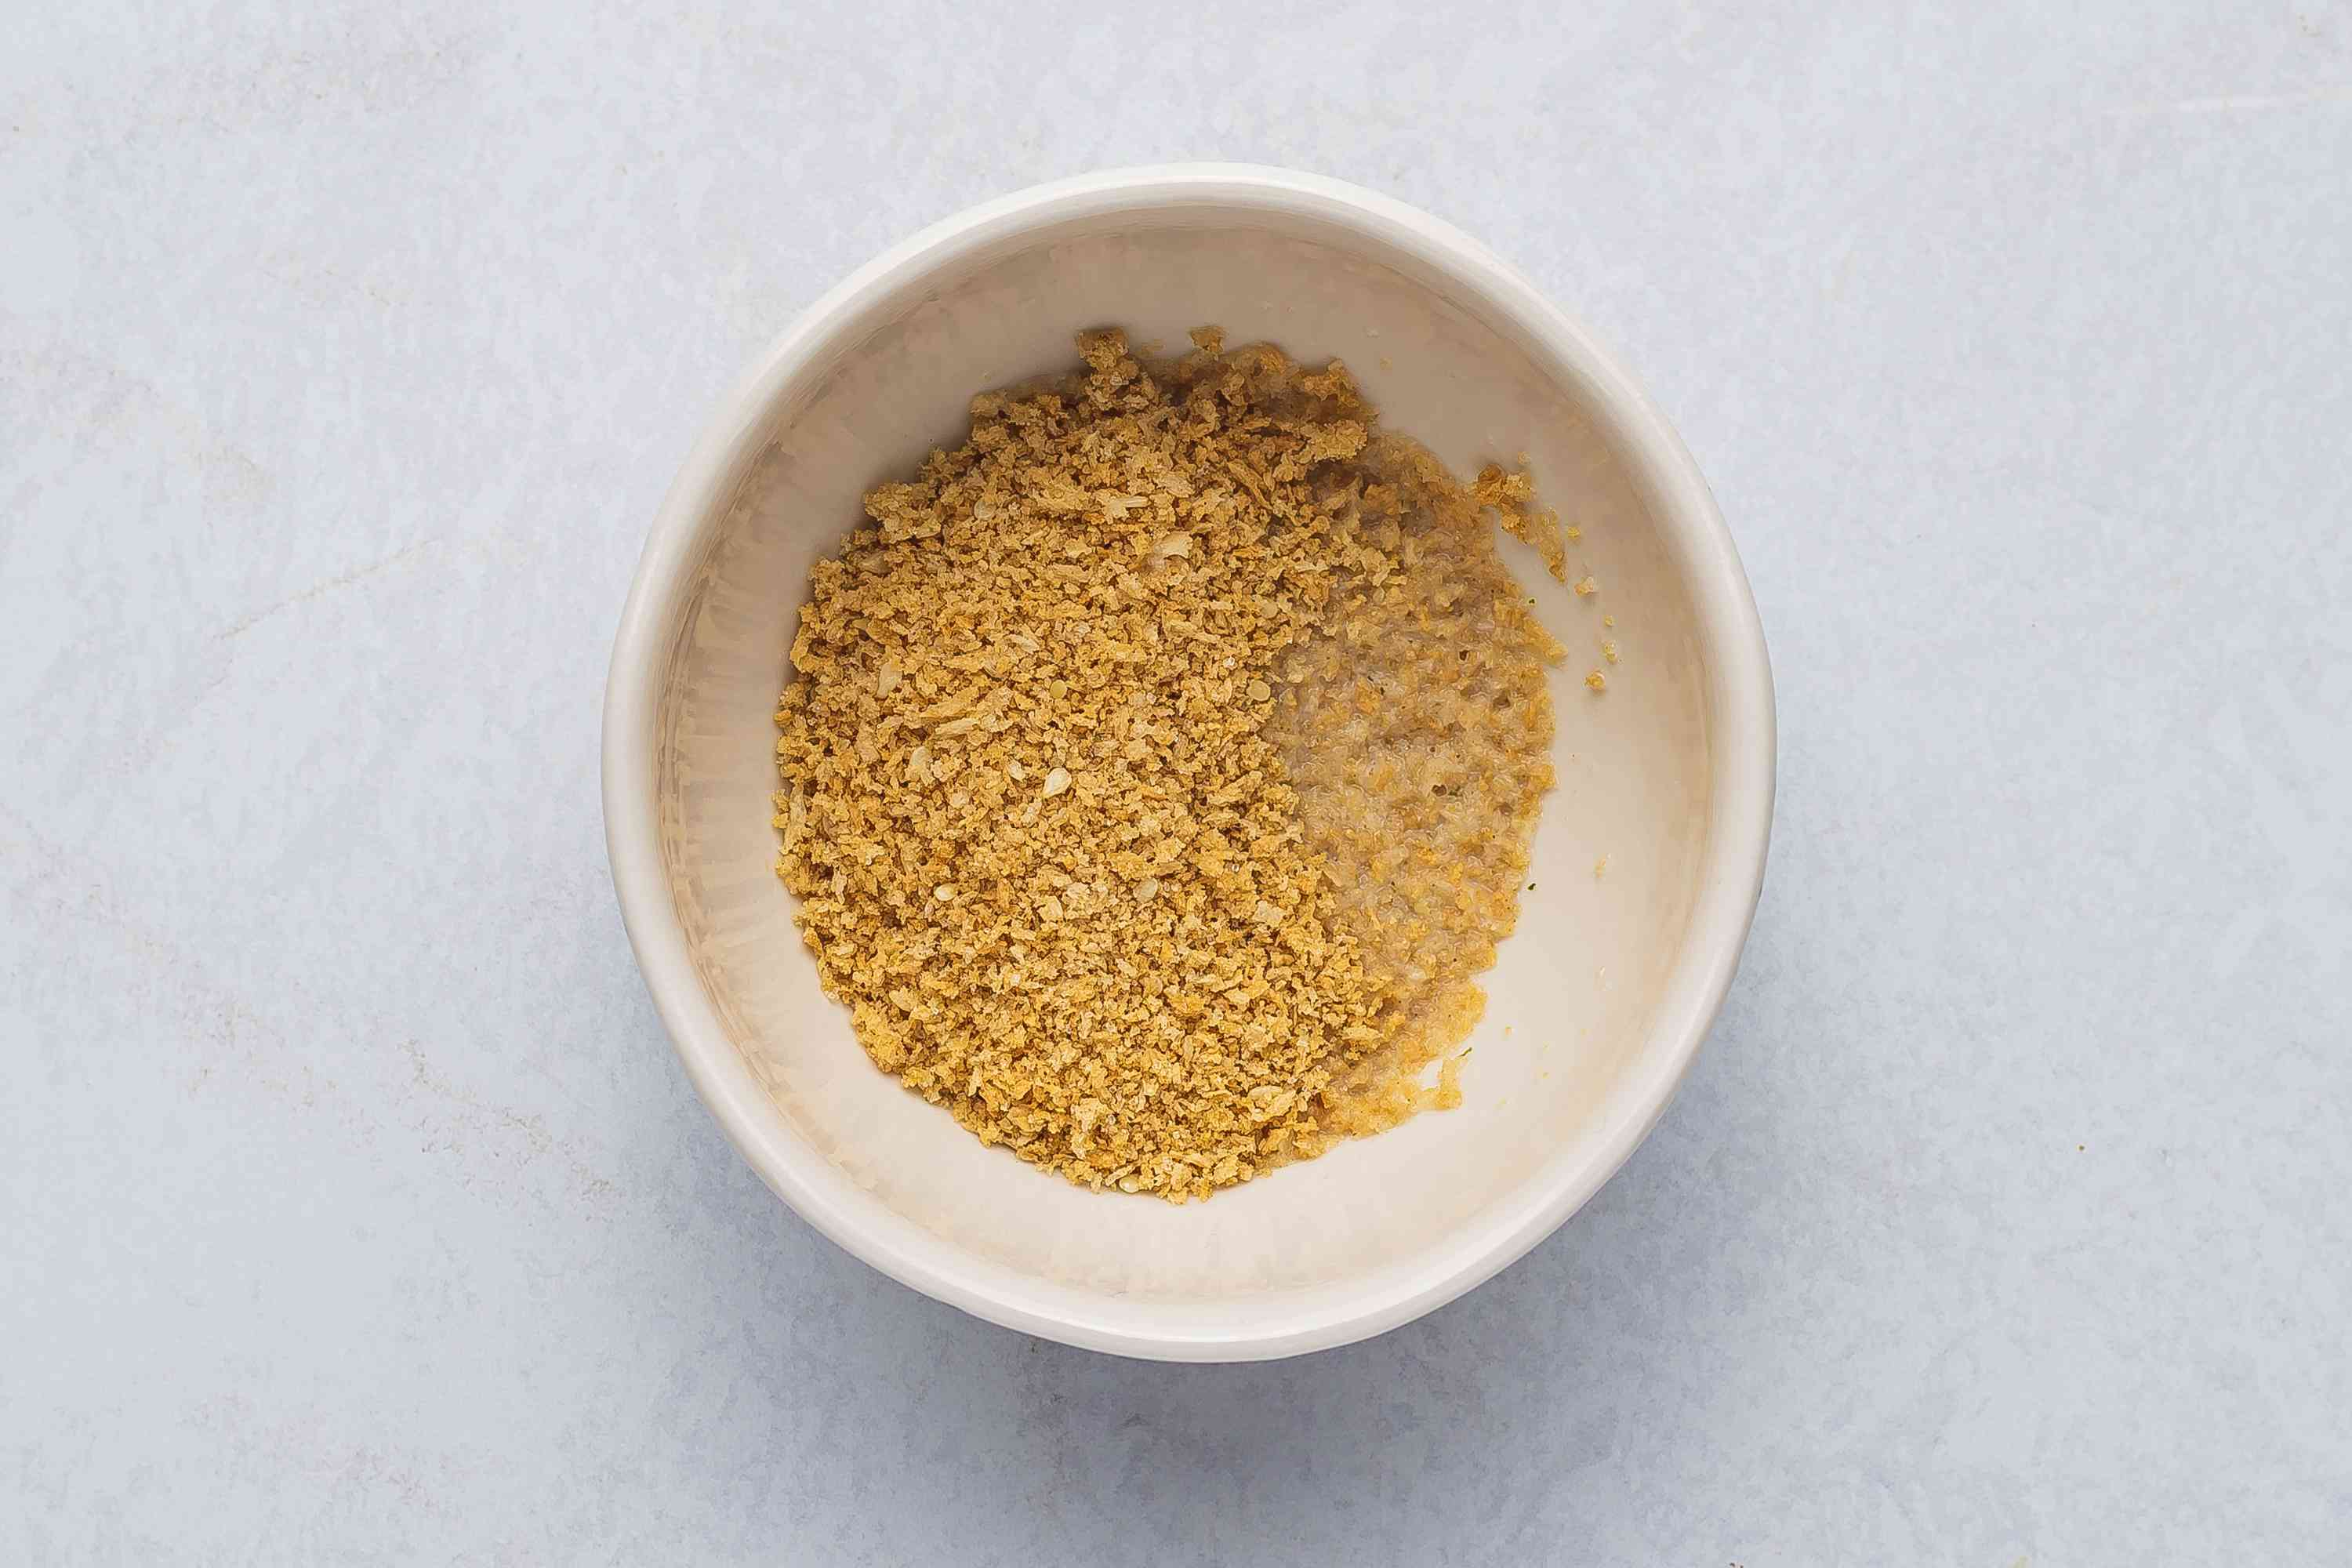 Milk and panko in a bowl